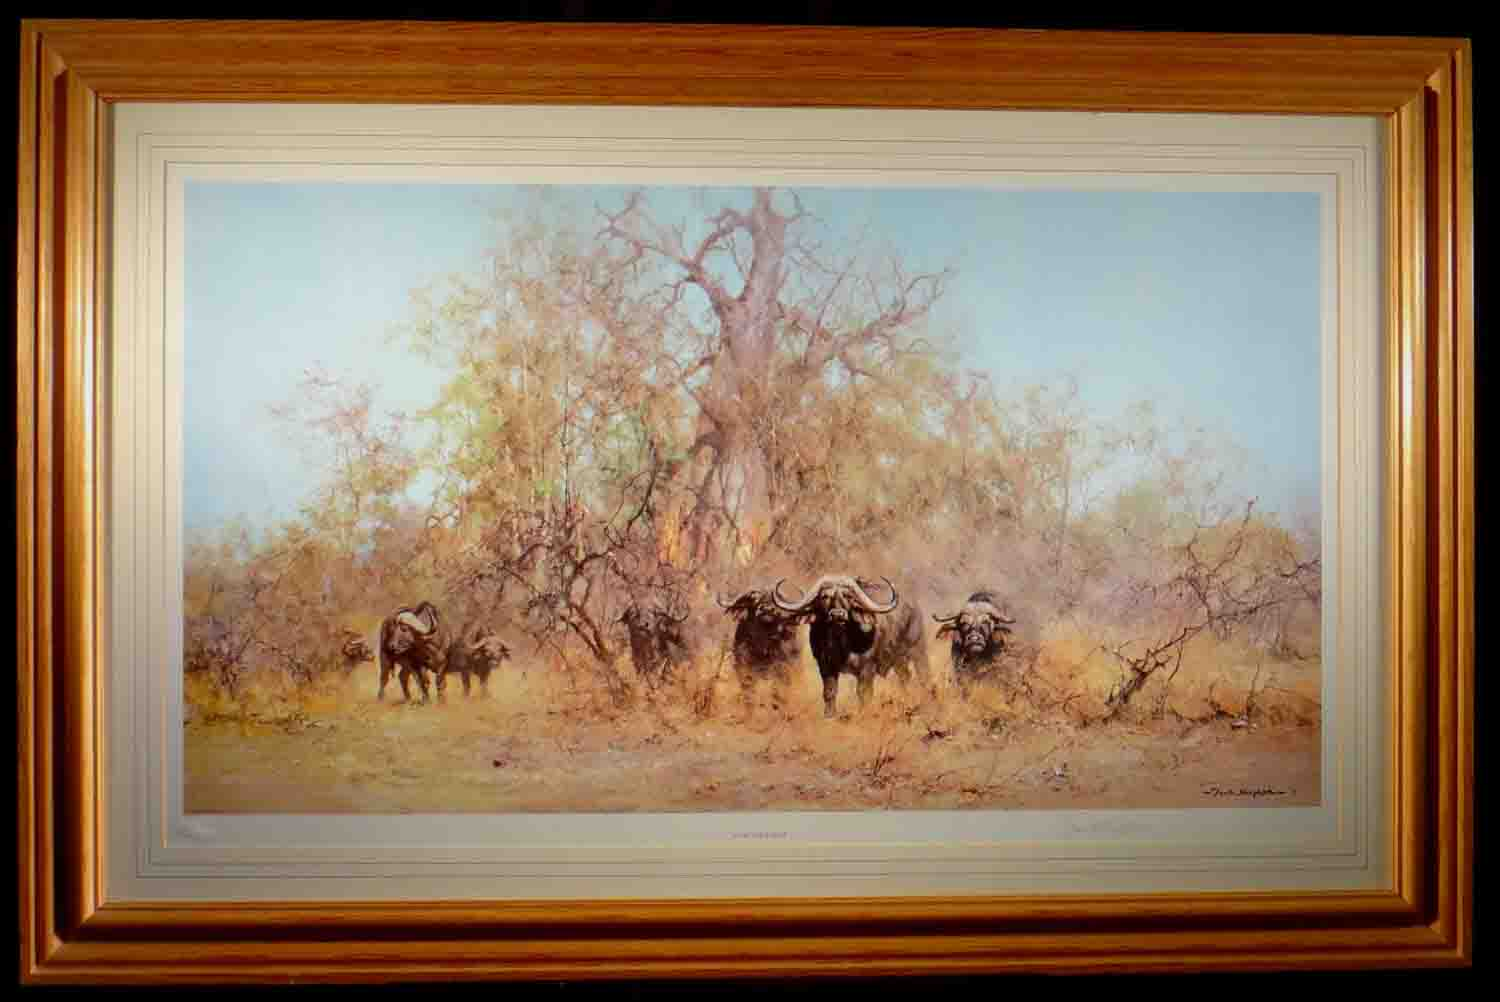 david shepherd, in the thick stuff, signed limited edition print